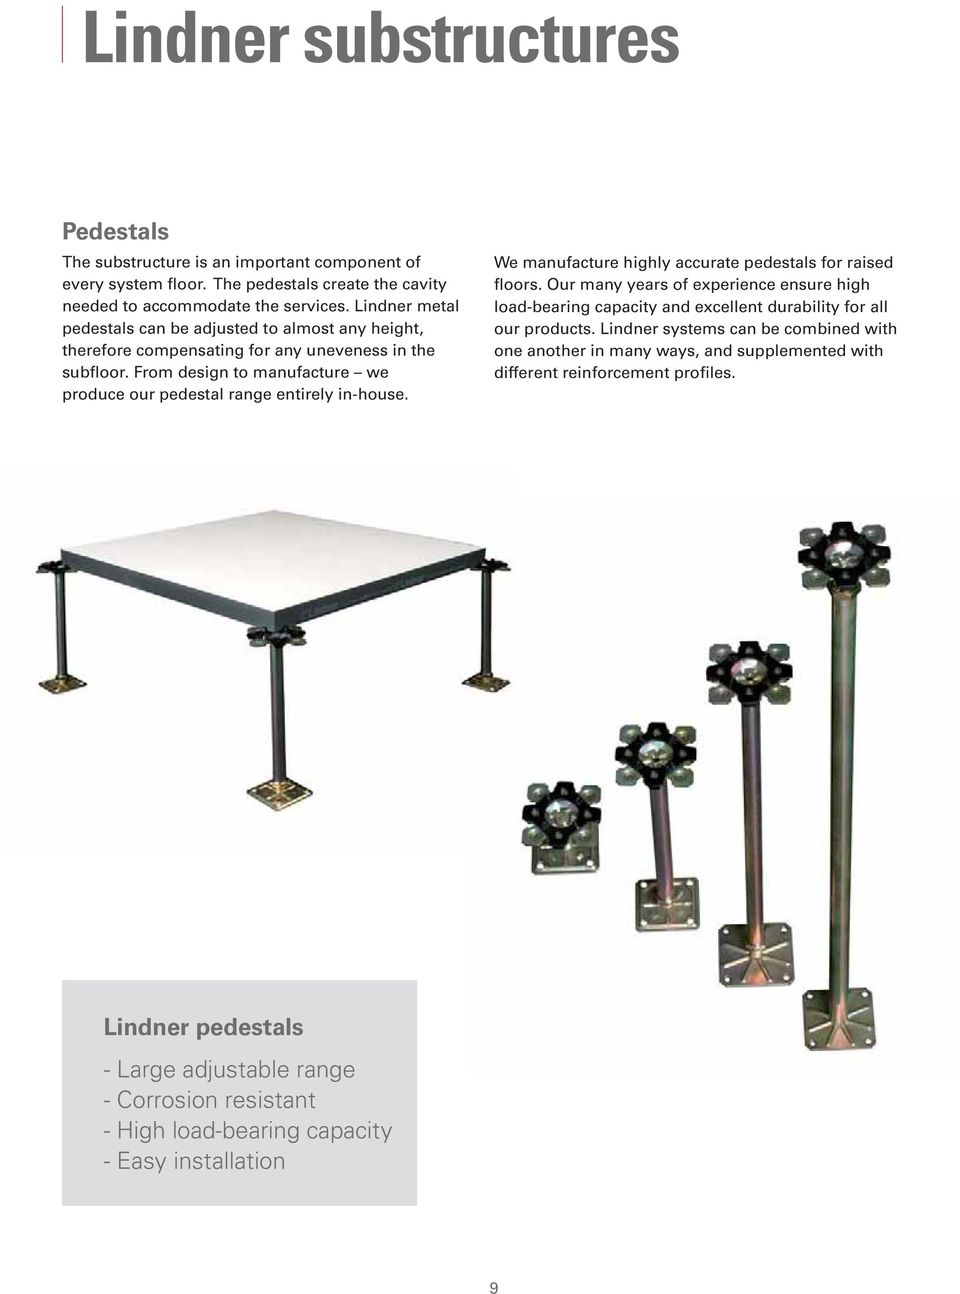 Concepts Products Service Enjoy Wall To Wall Comfort Nortec Raised Floor Systems Pdf Free Download